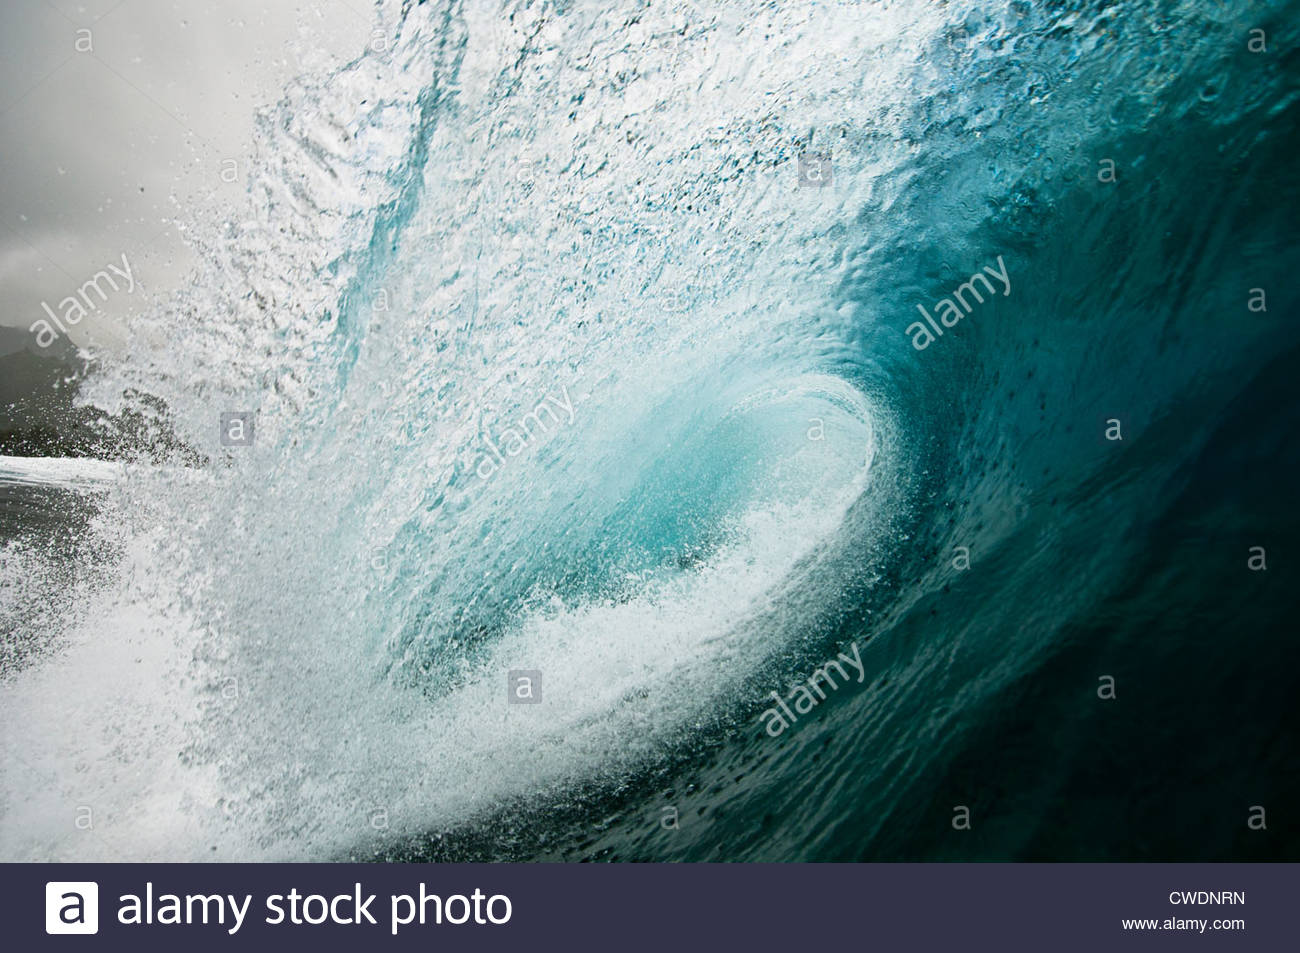 Breaking wave over a coral reef, Rarotonga, Cook Islands. - Stock Image